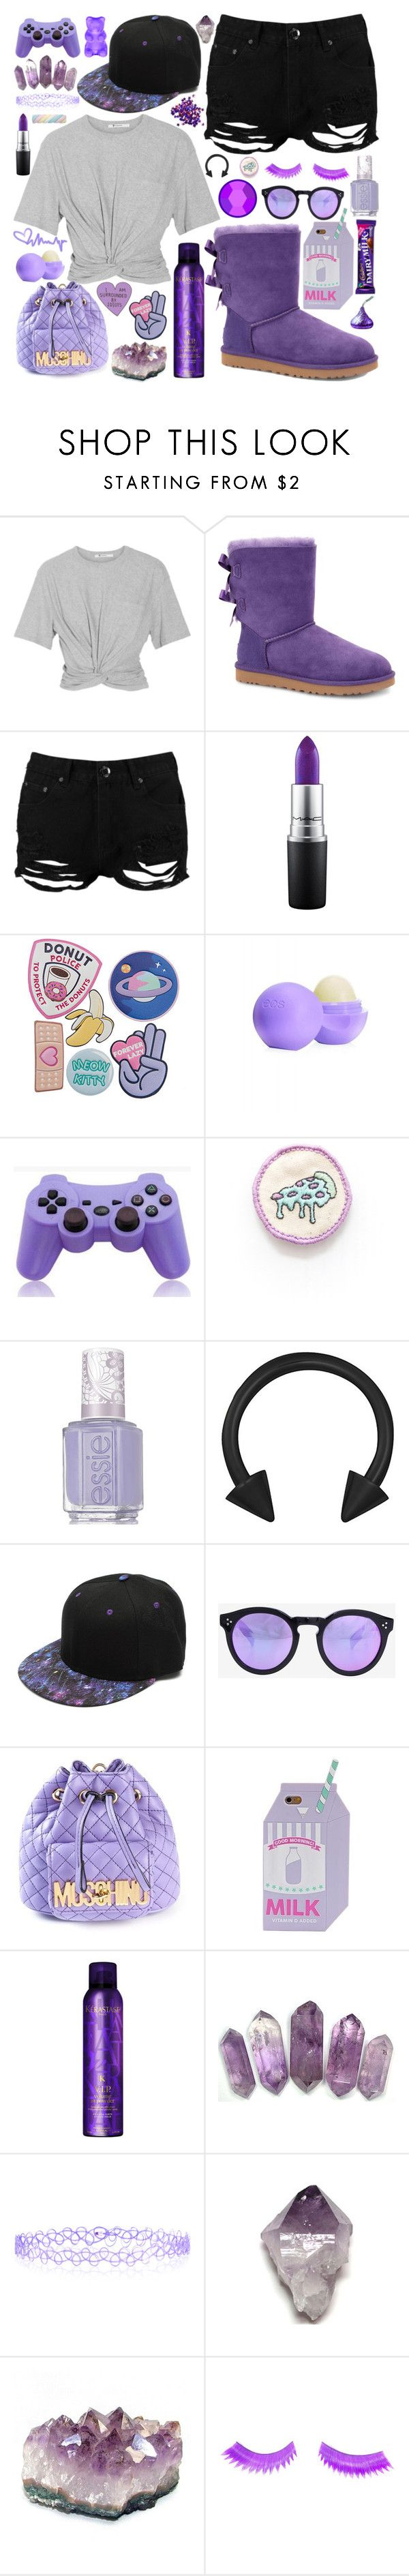 """""""No! I get mad at myself! That's, ugh, the thing I do. I get mad at myself and then it makes me suck at everything I do even more."""" by opal-dusk-gr ❤ liked on Polyvore featuring T By Alexander Wang, UGG Australia, Boohoo, MAC Cosmetics, Eos, Sony, Essie, Illesteva, Moschino and Kérastase"""